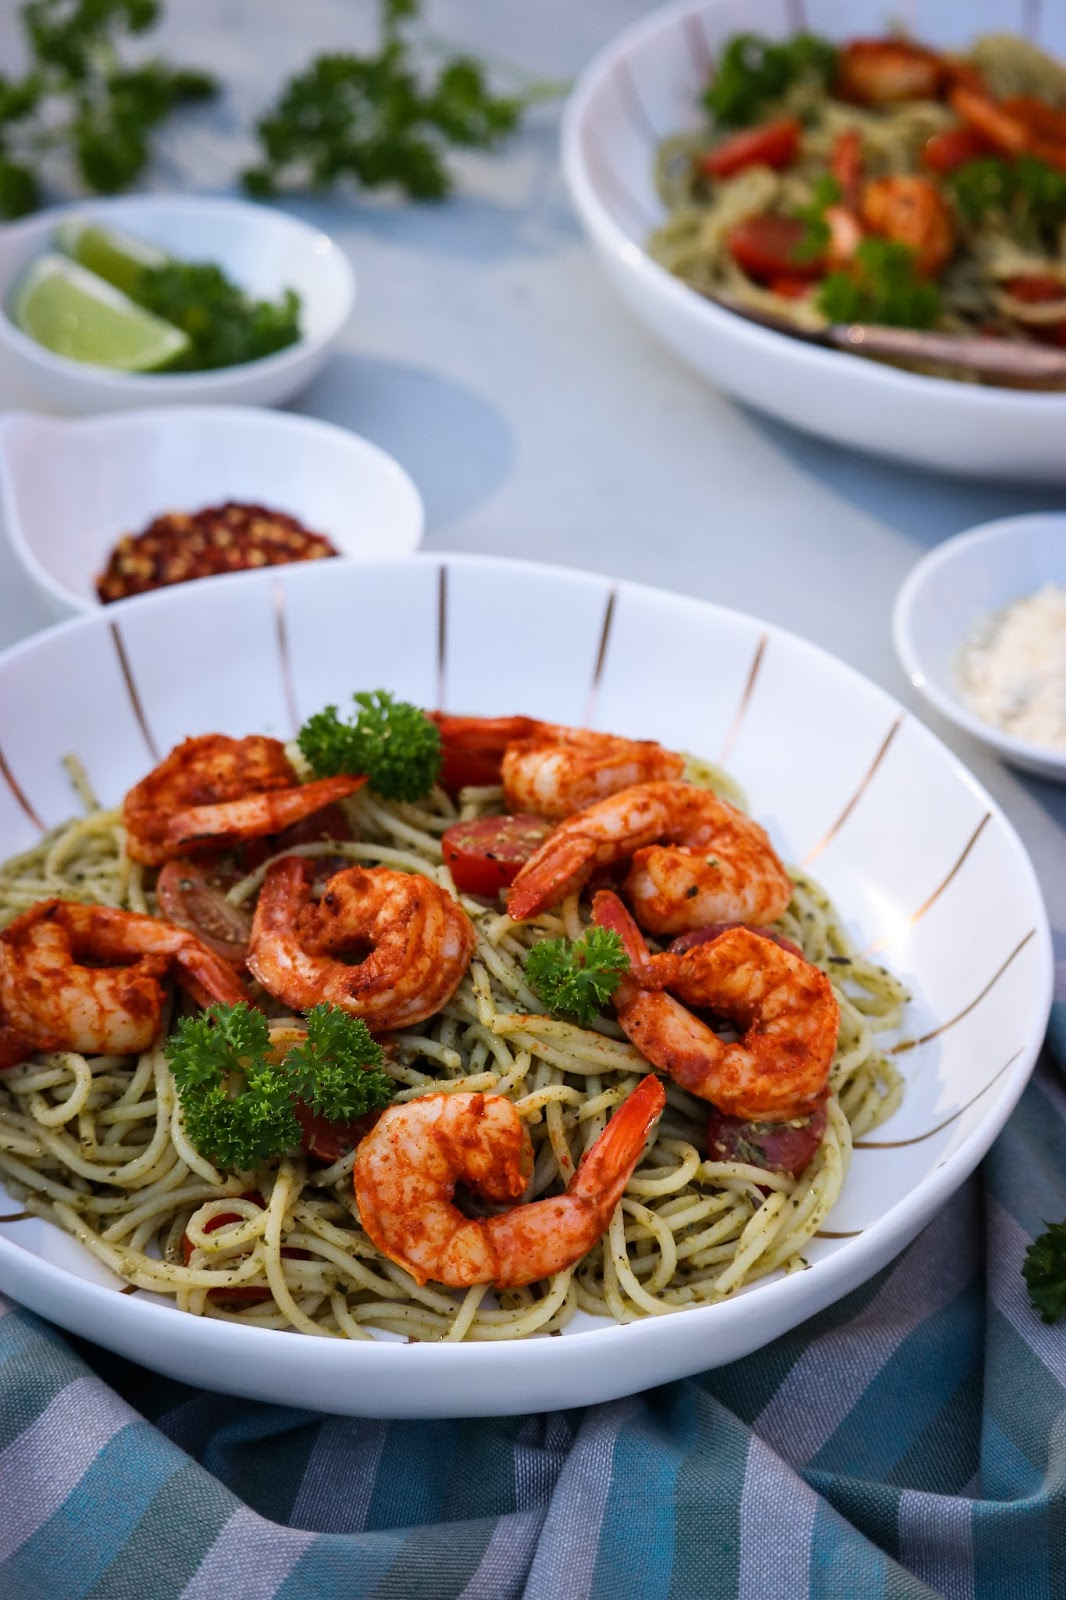 shrimp pesto pasta, green spaghetti, gluten free pasta, seafood, shrimp, st patricks day special, vegan, pesto pasta, food blogger, myriad musings